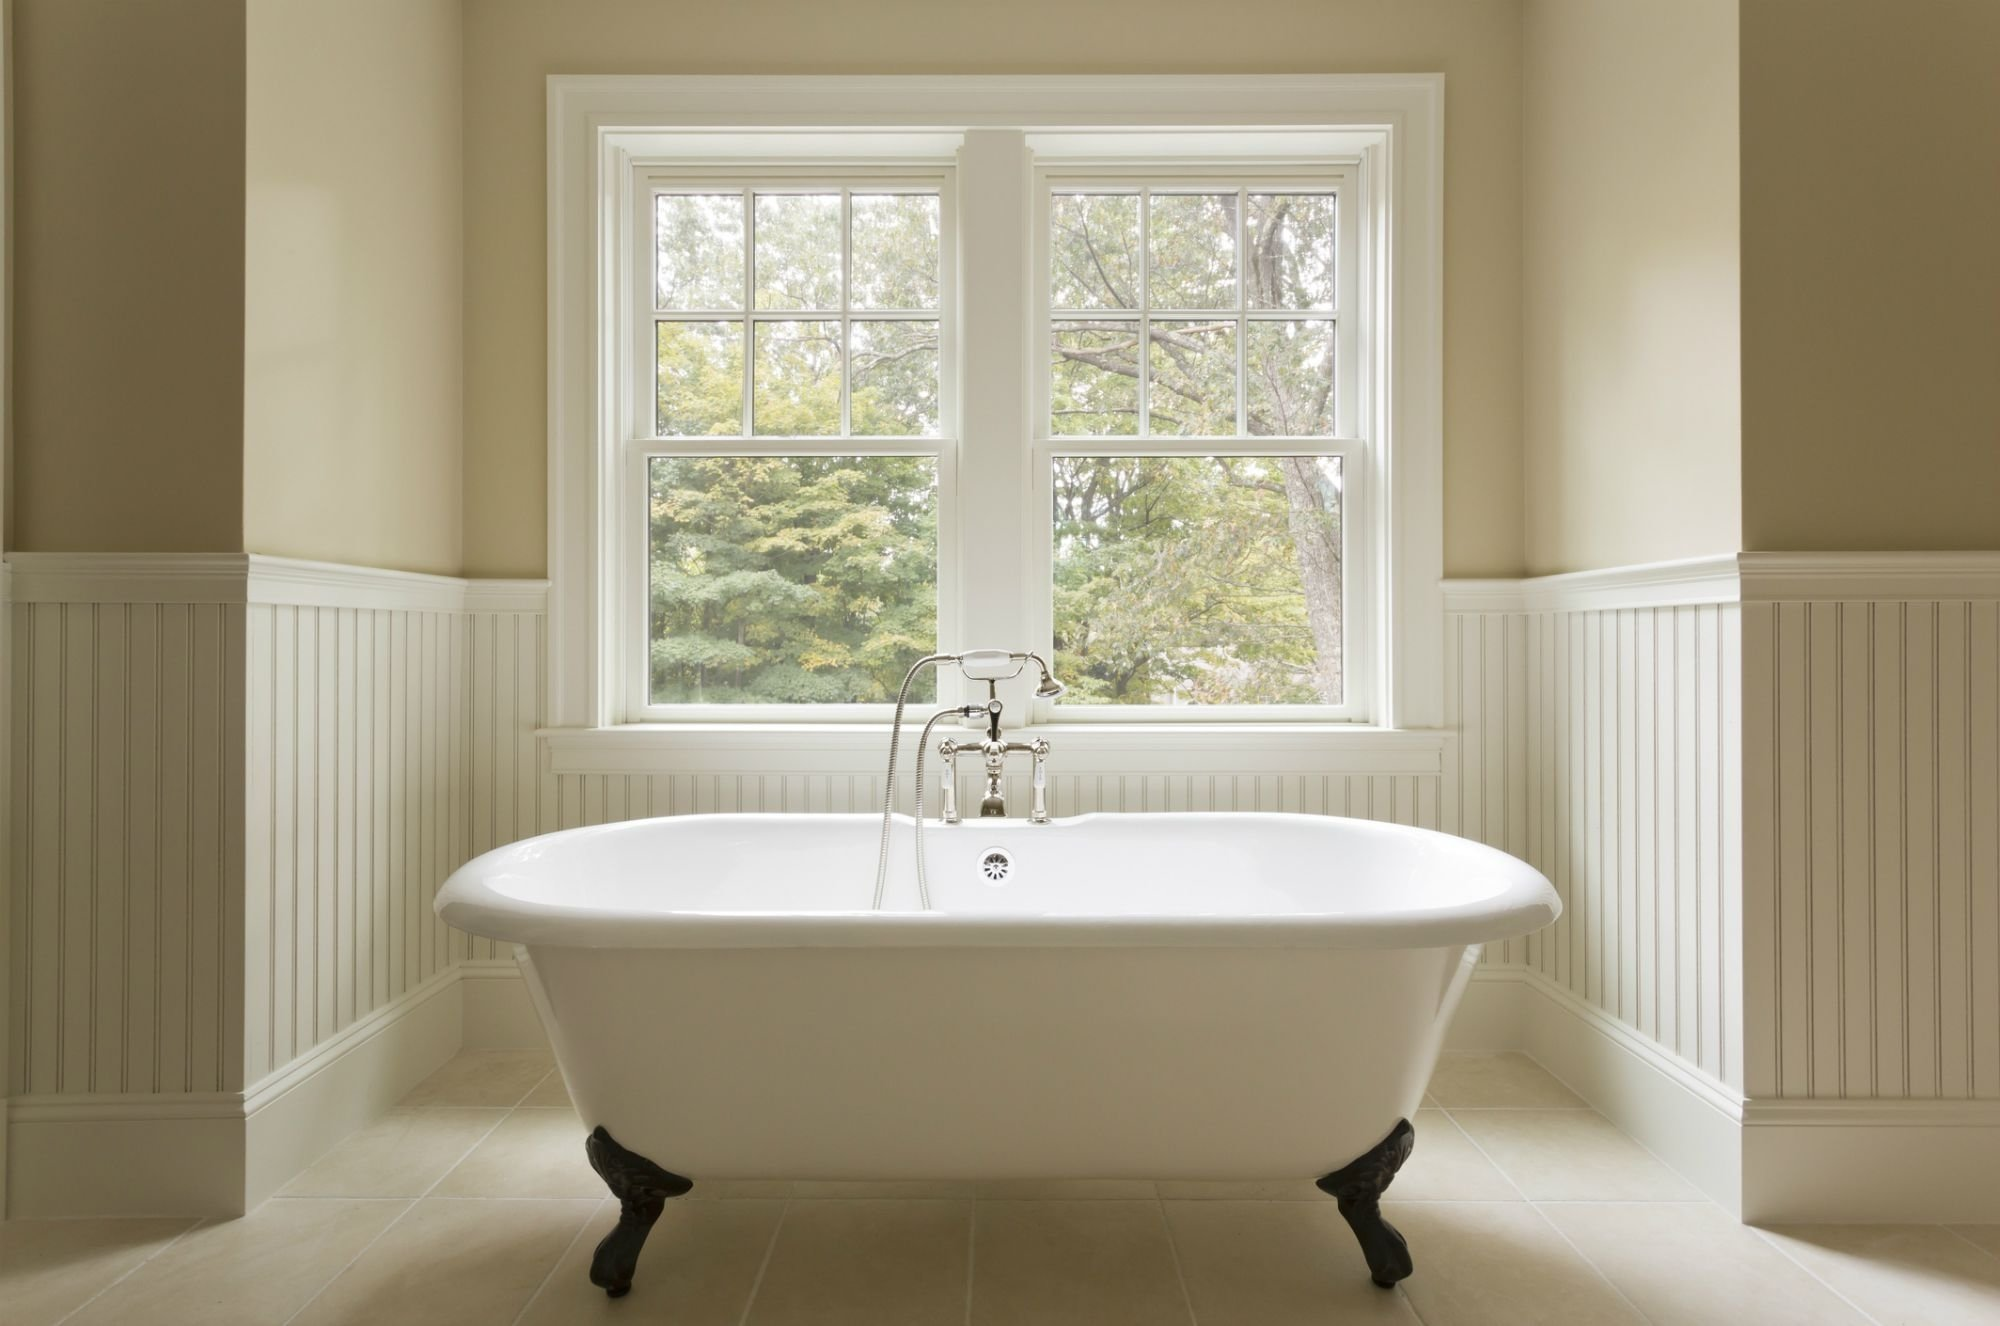 10 Most Recommended Clawfoot Tub Bathroom Design Ideas